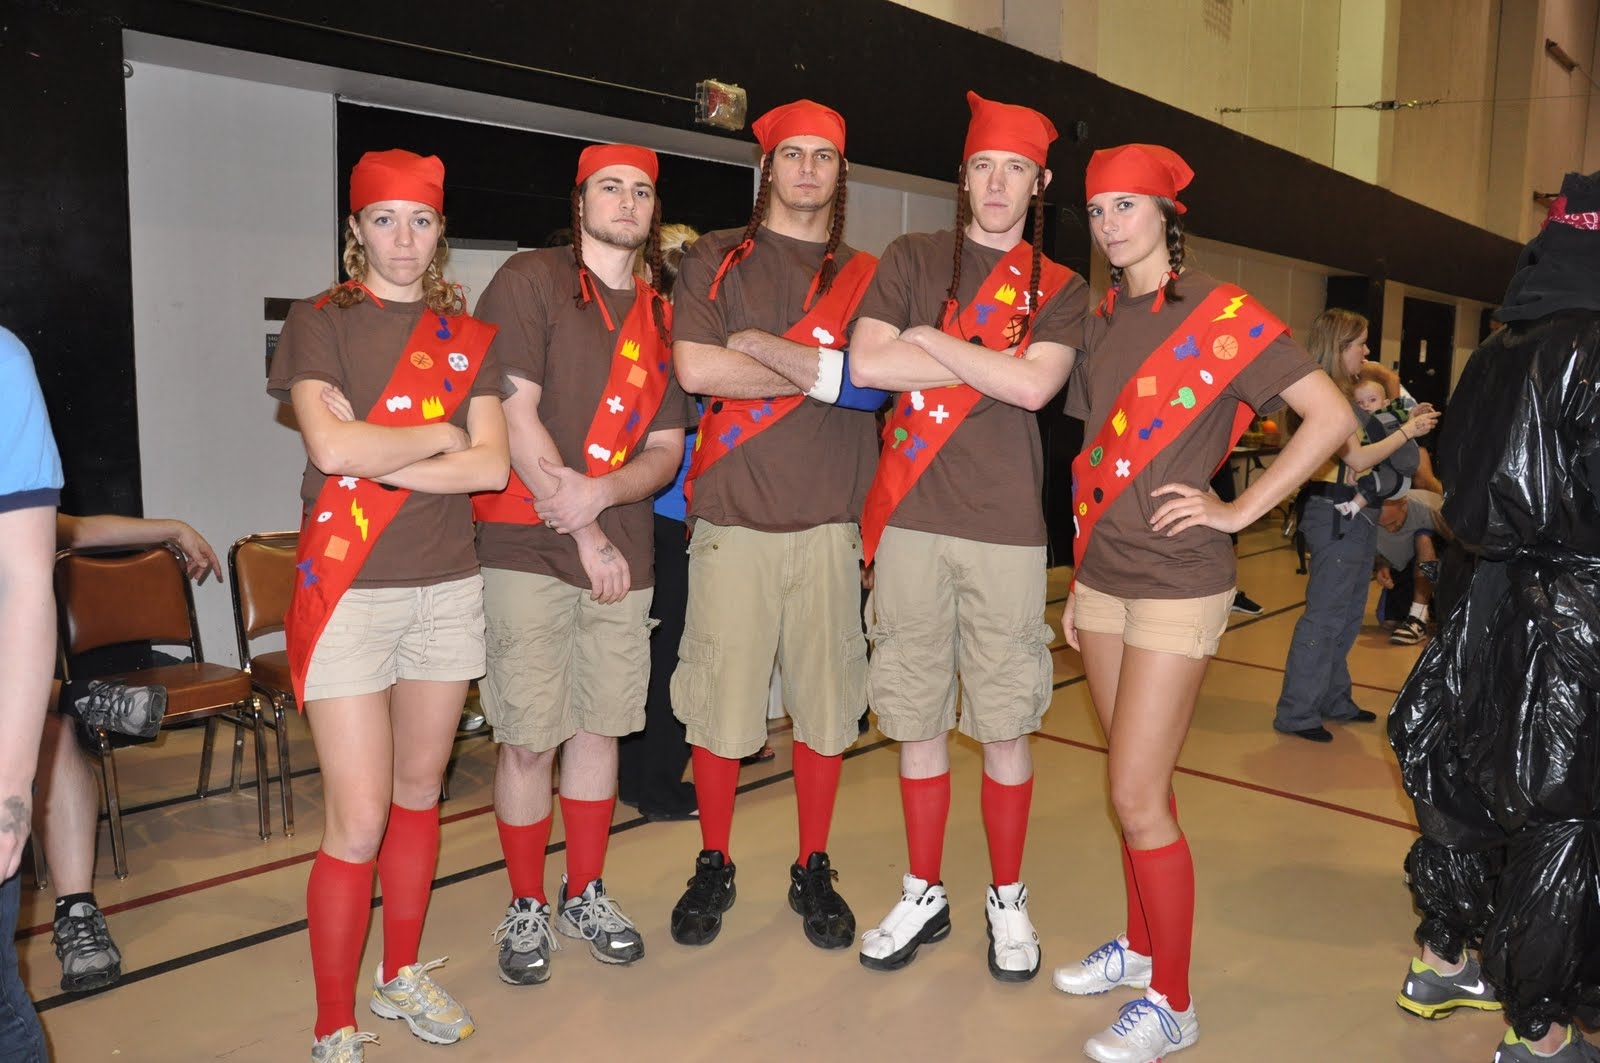 The costumes made me laugh Dodgeball Movie Costumes  sc 1 st  Intellego.info & Dodgeball Movie Costumes - intellego